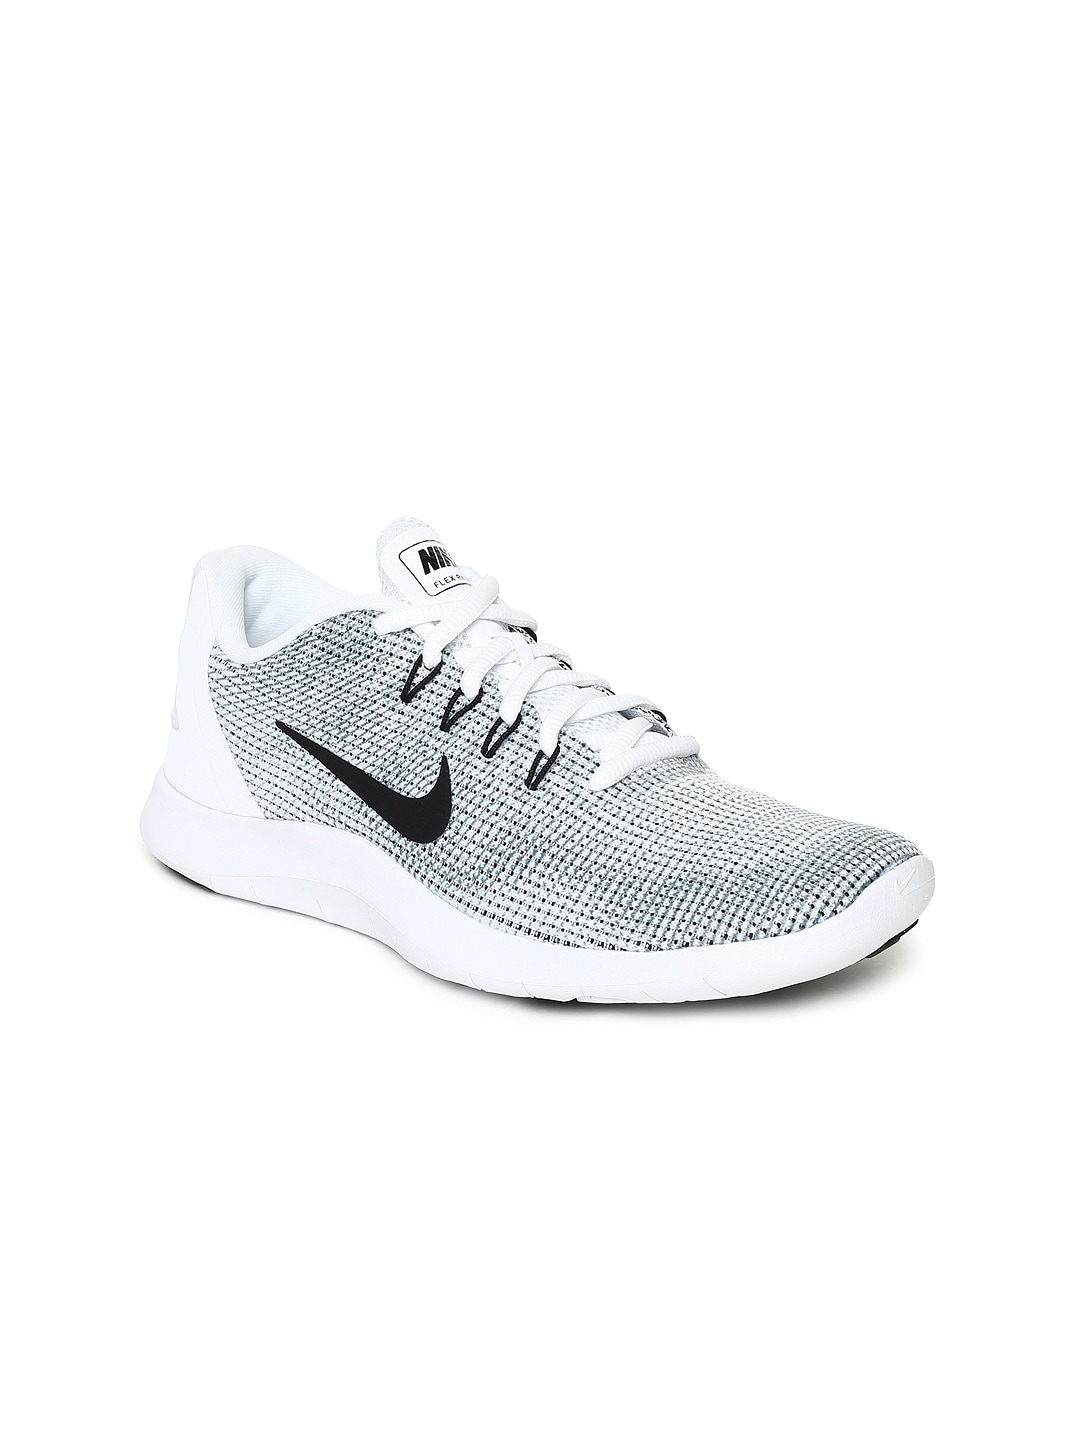 04da21352c36 Nike Running Shoes - Buy Nike Running Shoes Online